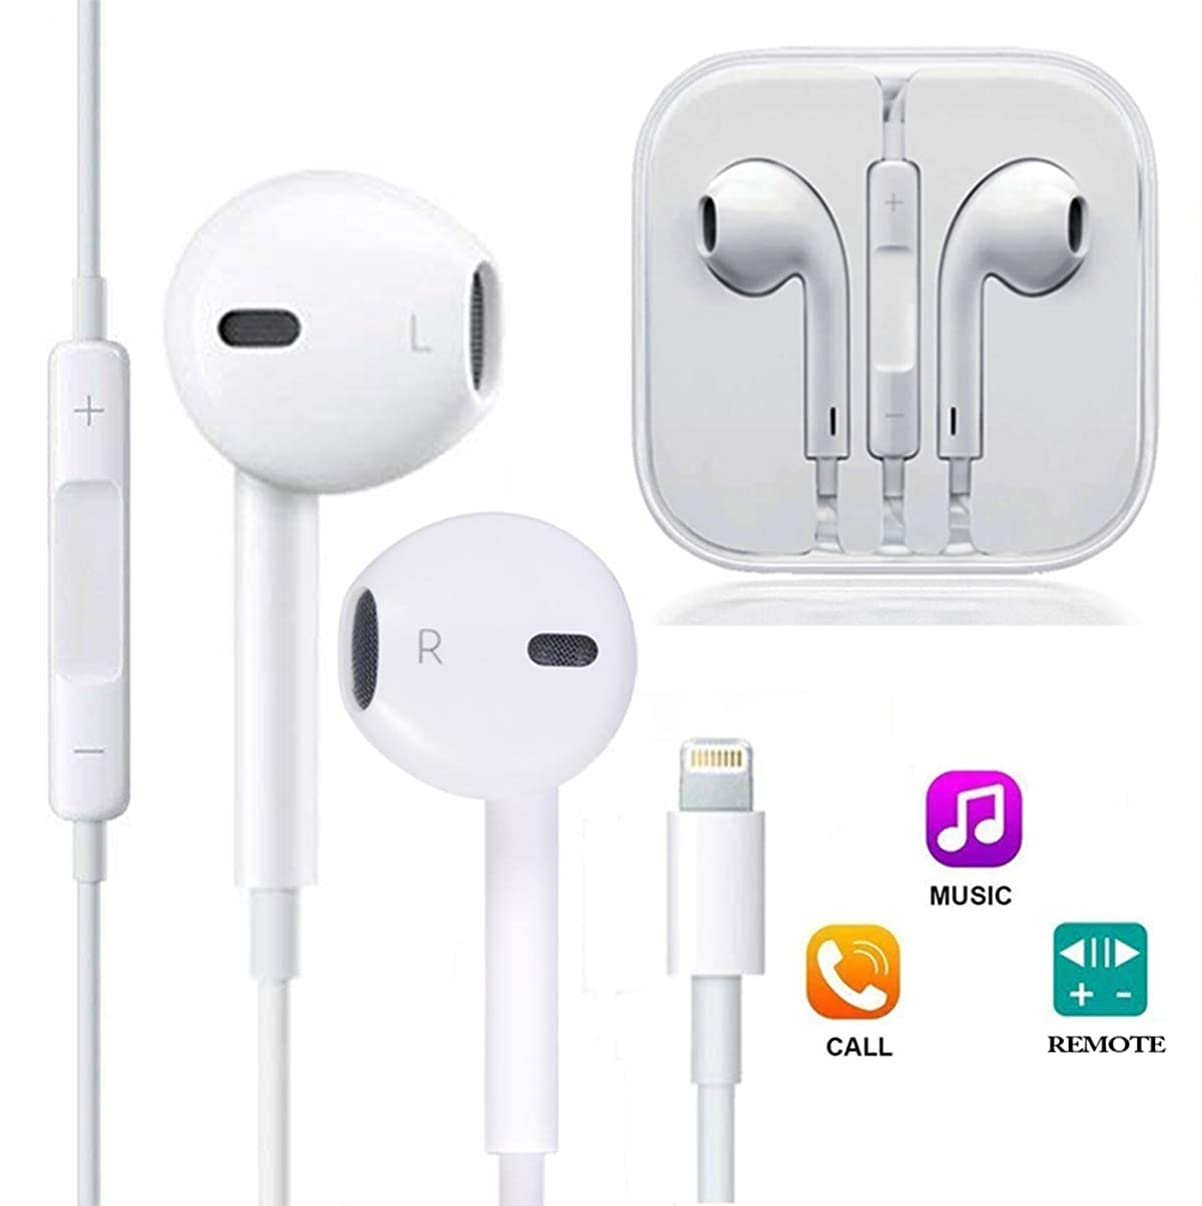 ZestyChef Earbuds, Microphone Earphones Stereo Headphones Noise Isolating Headset Compatible with iPhone 7/7 Plus/8/8 Plus/X/XS/XS Max/XR Earphones